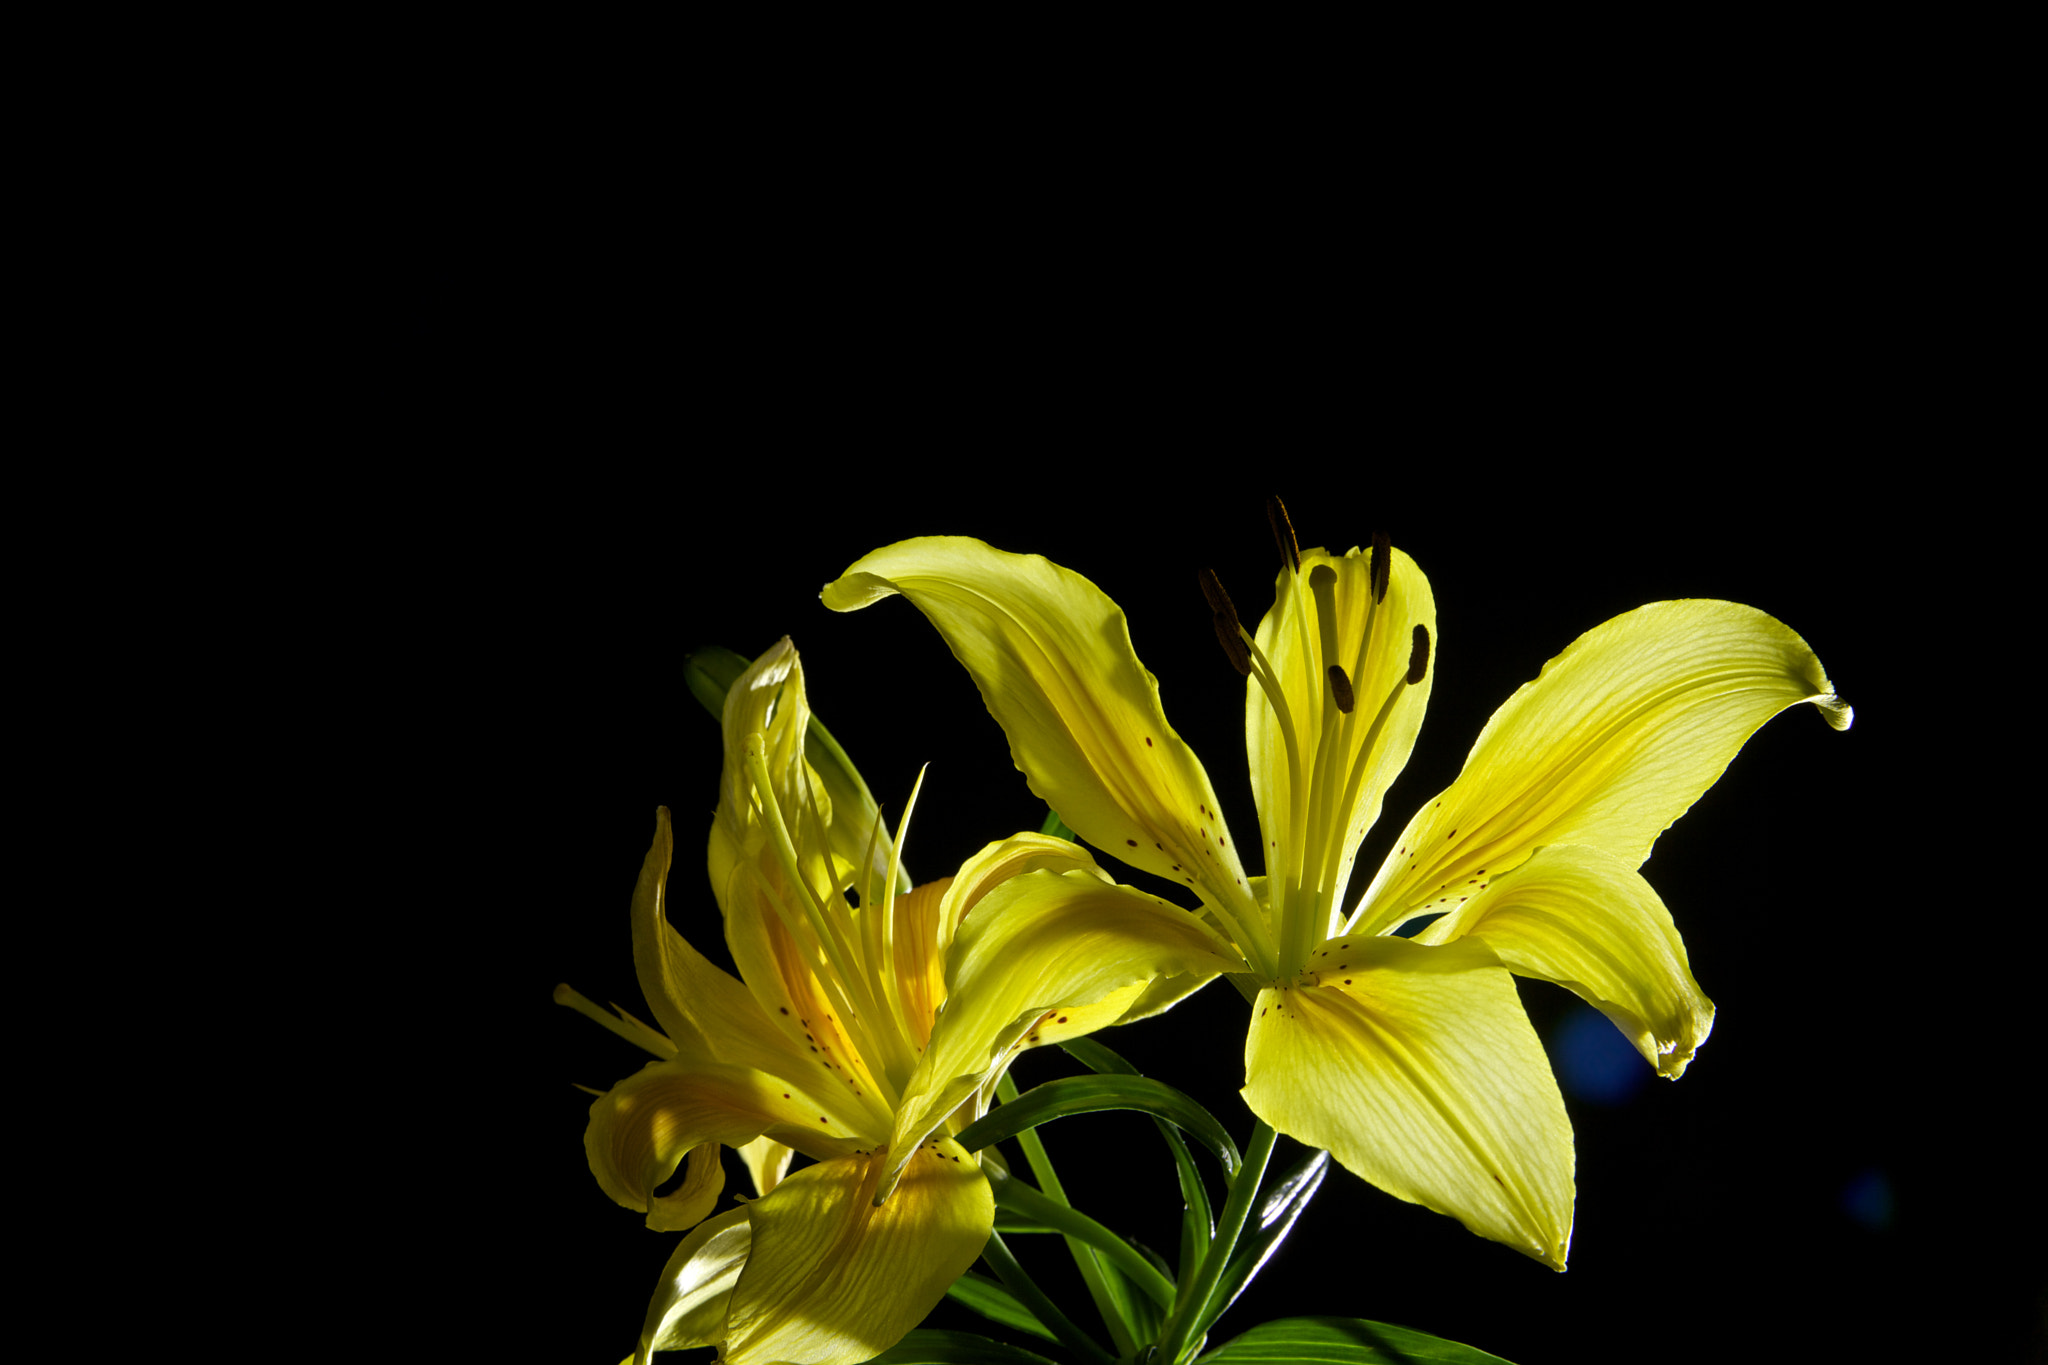 Photograph yellow2 by Sarede Kumaraswamy on 500px